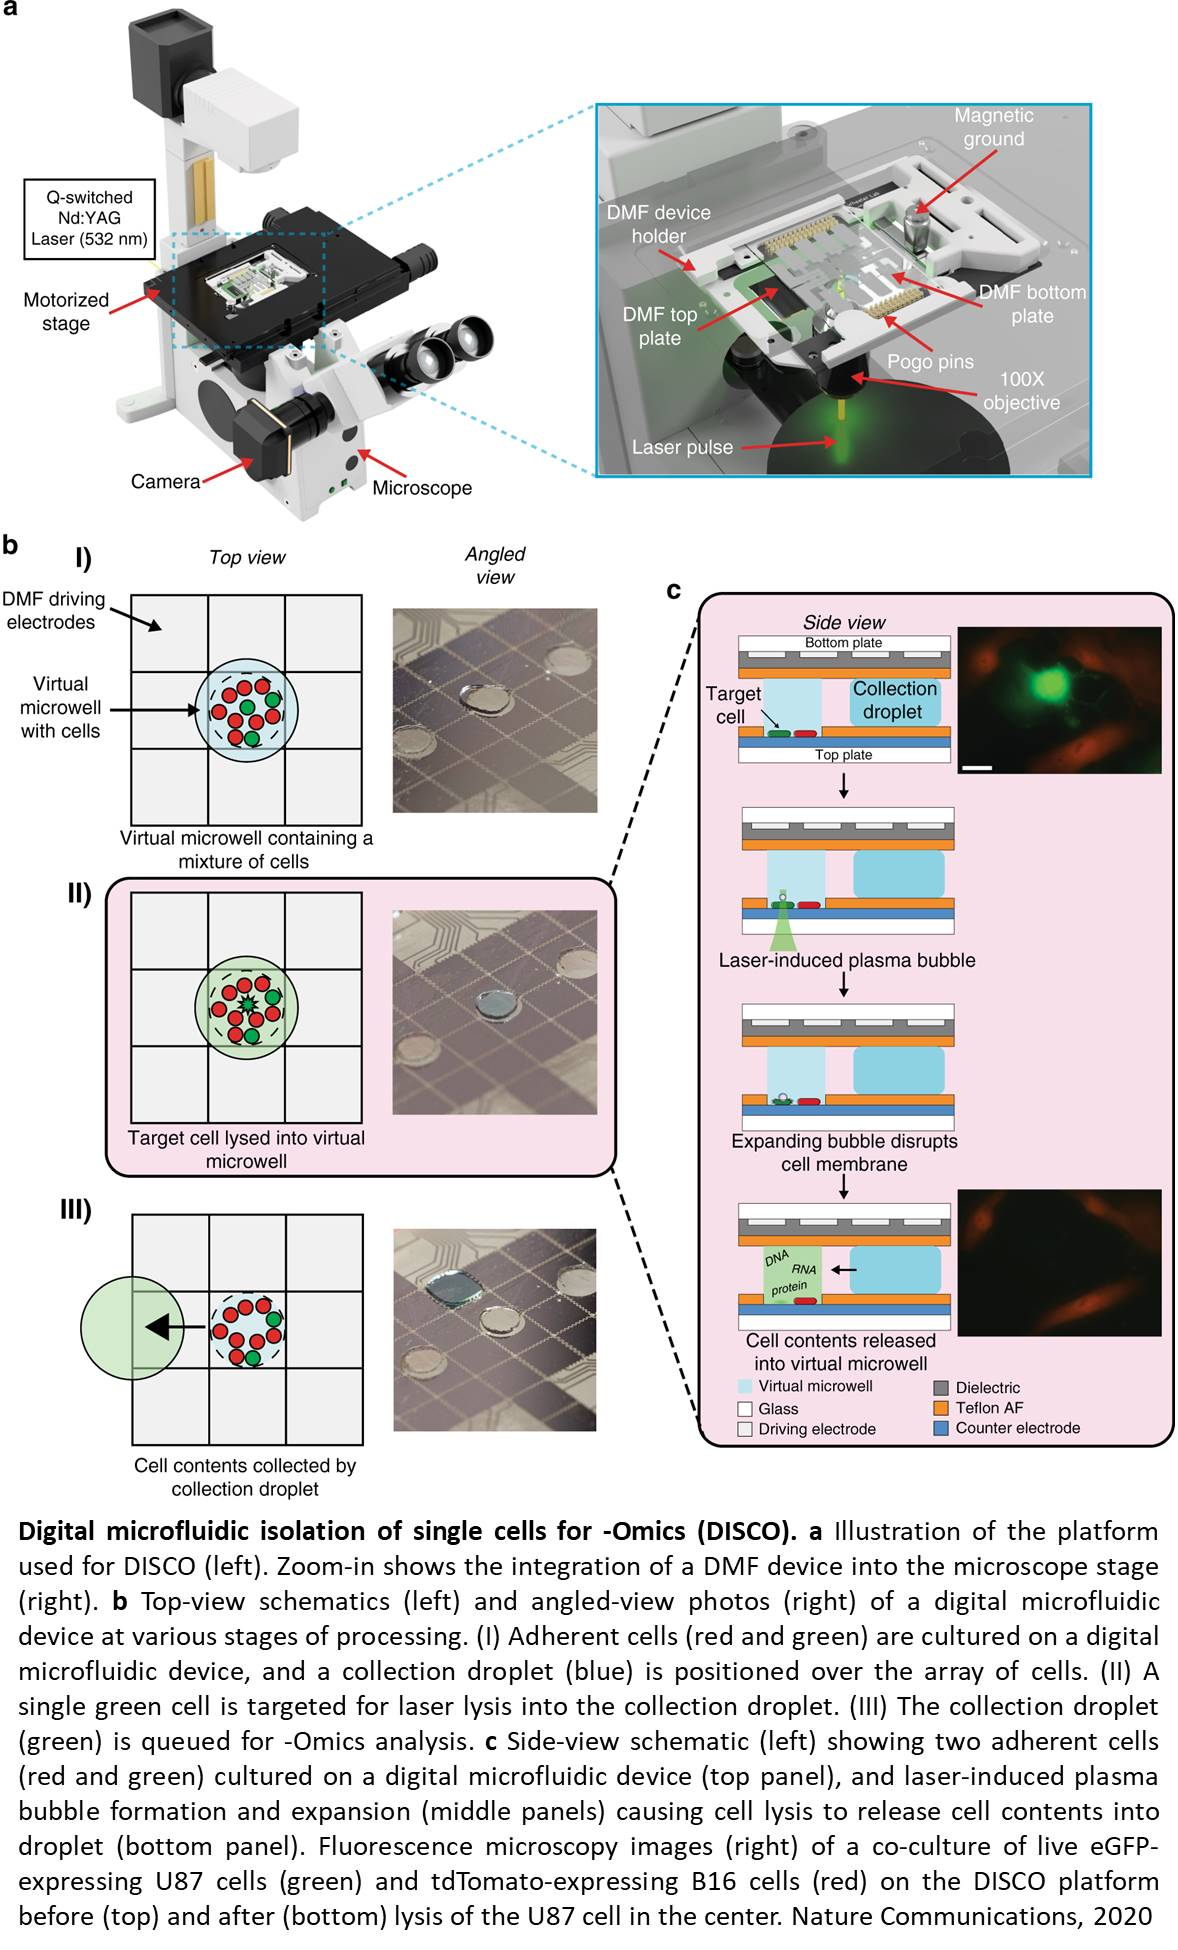 Digital microfluidic Isolation of Single Cells for Omics (DISCO)